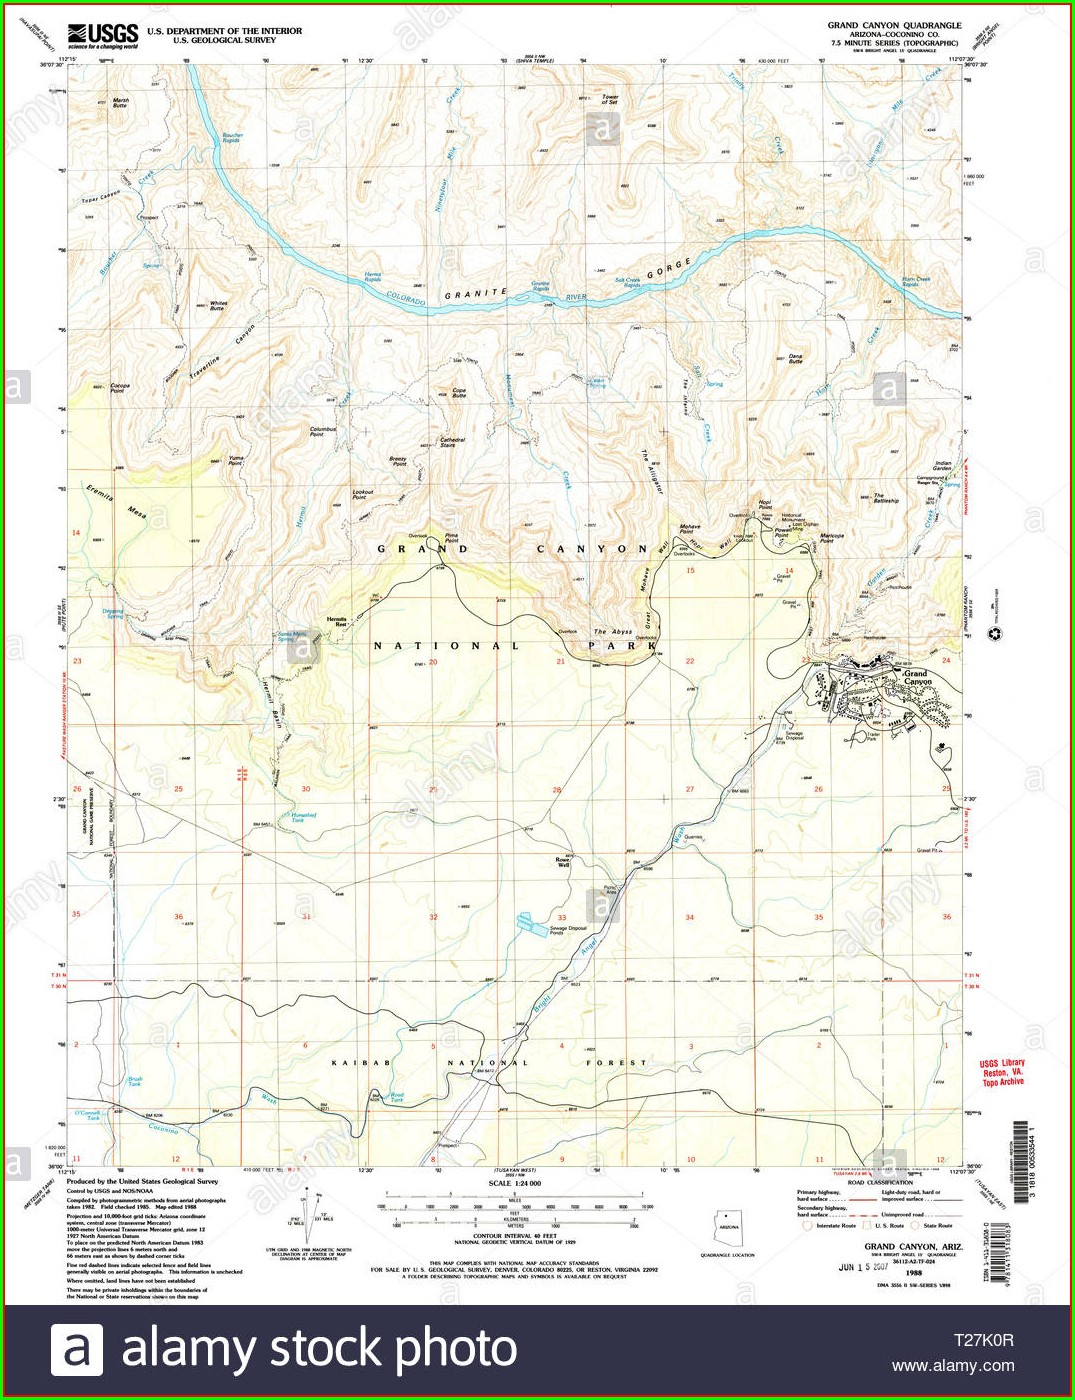 High Resolution Grand Canyon Topographic Map